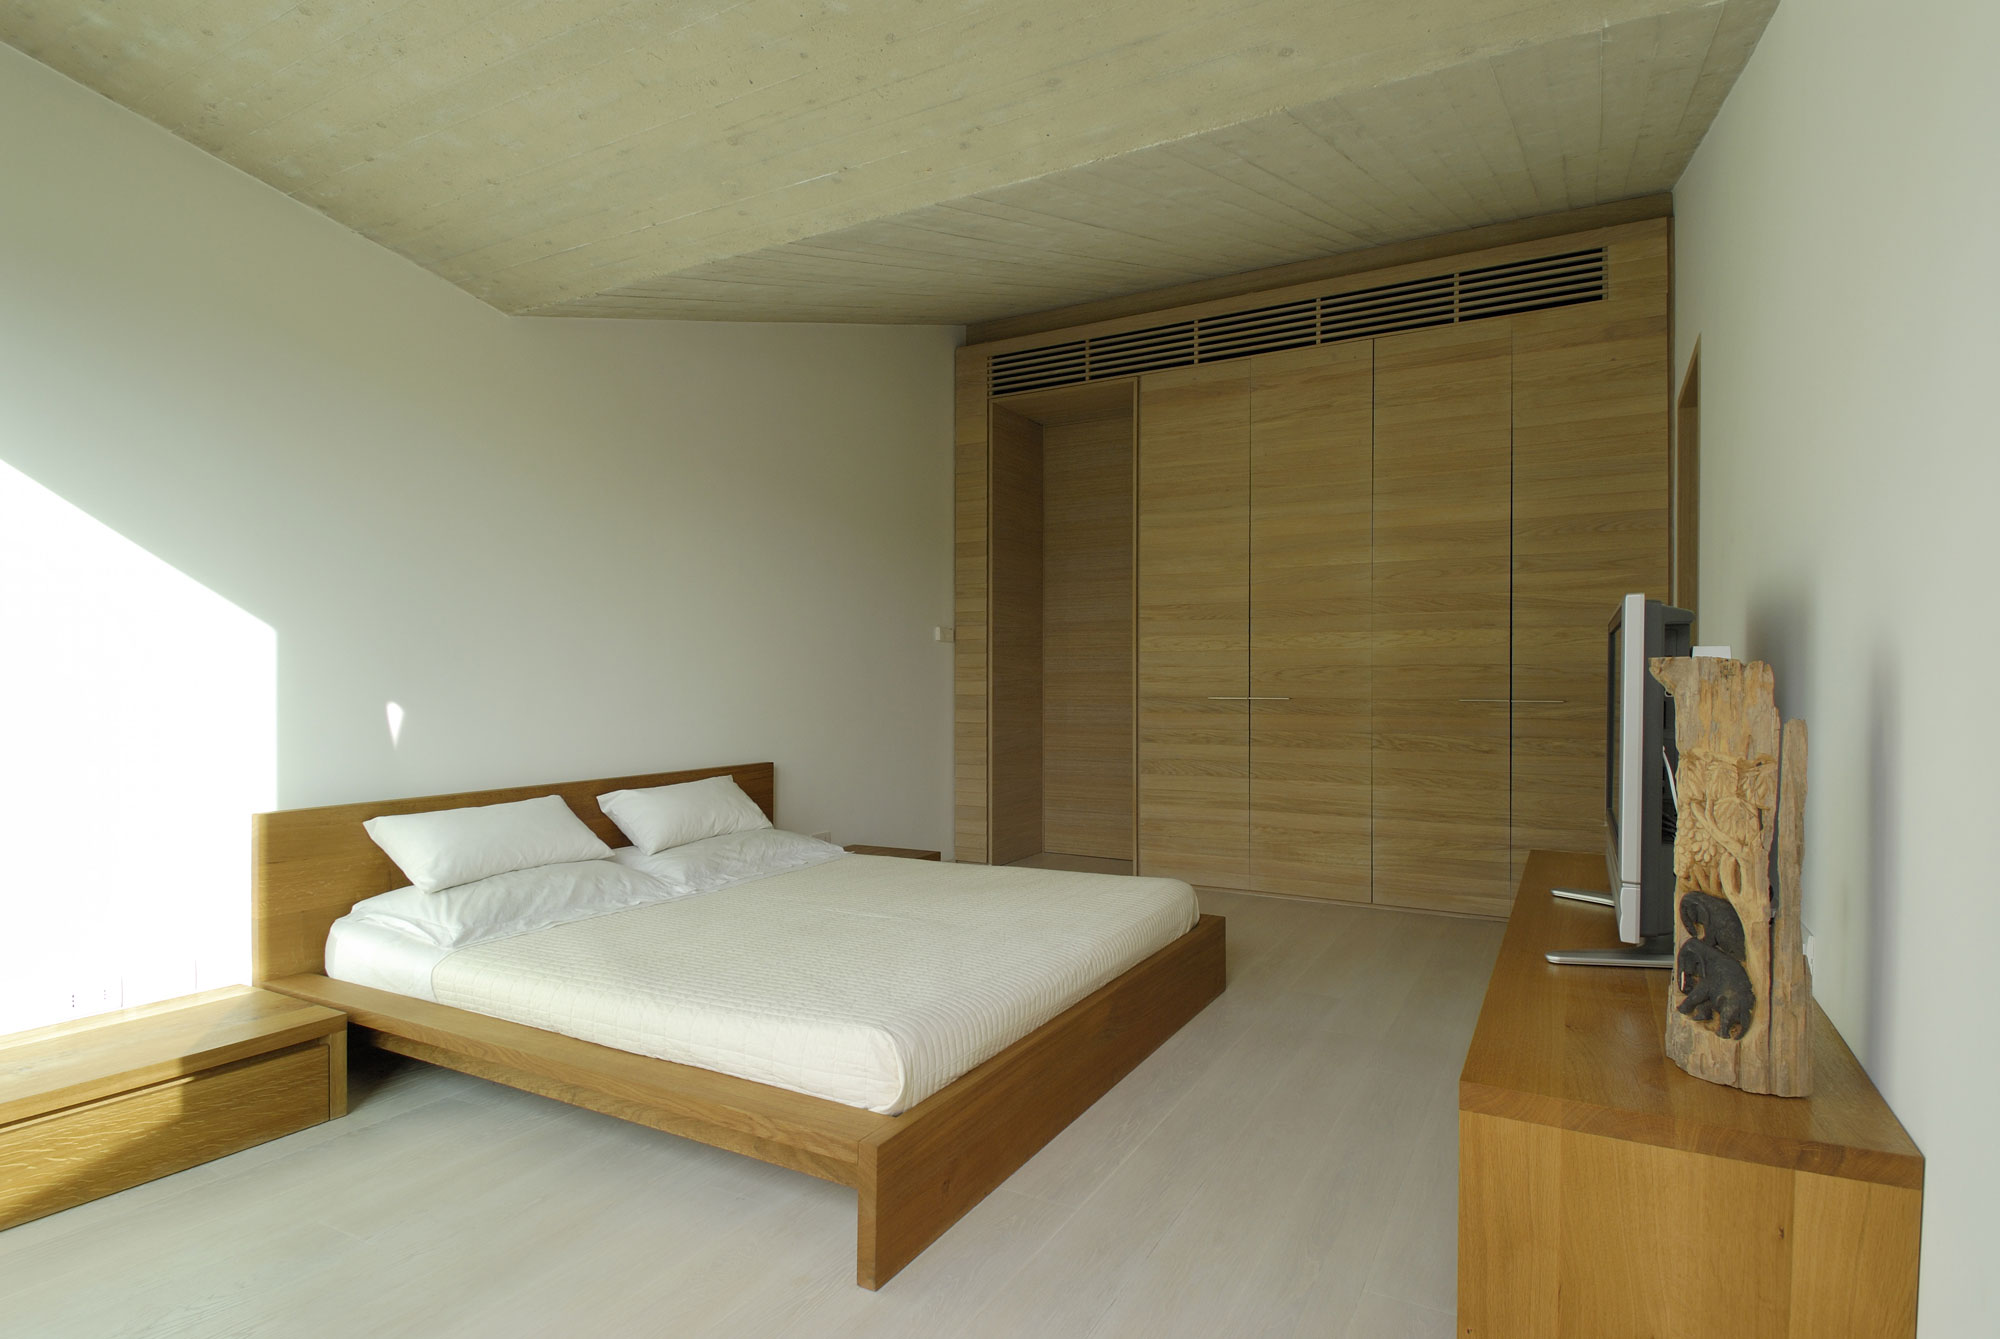 Residence-in-Sardinia-bedroom-with-double-bed